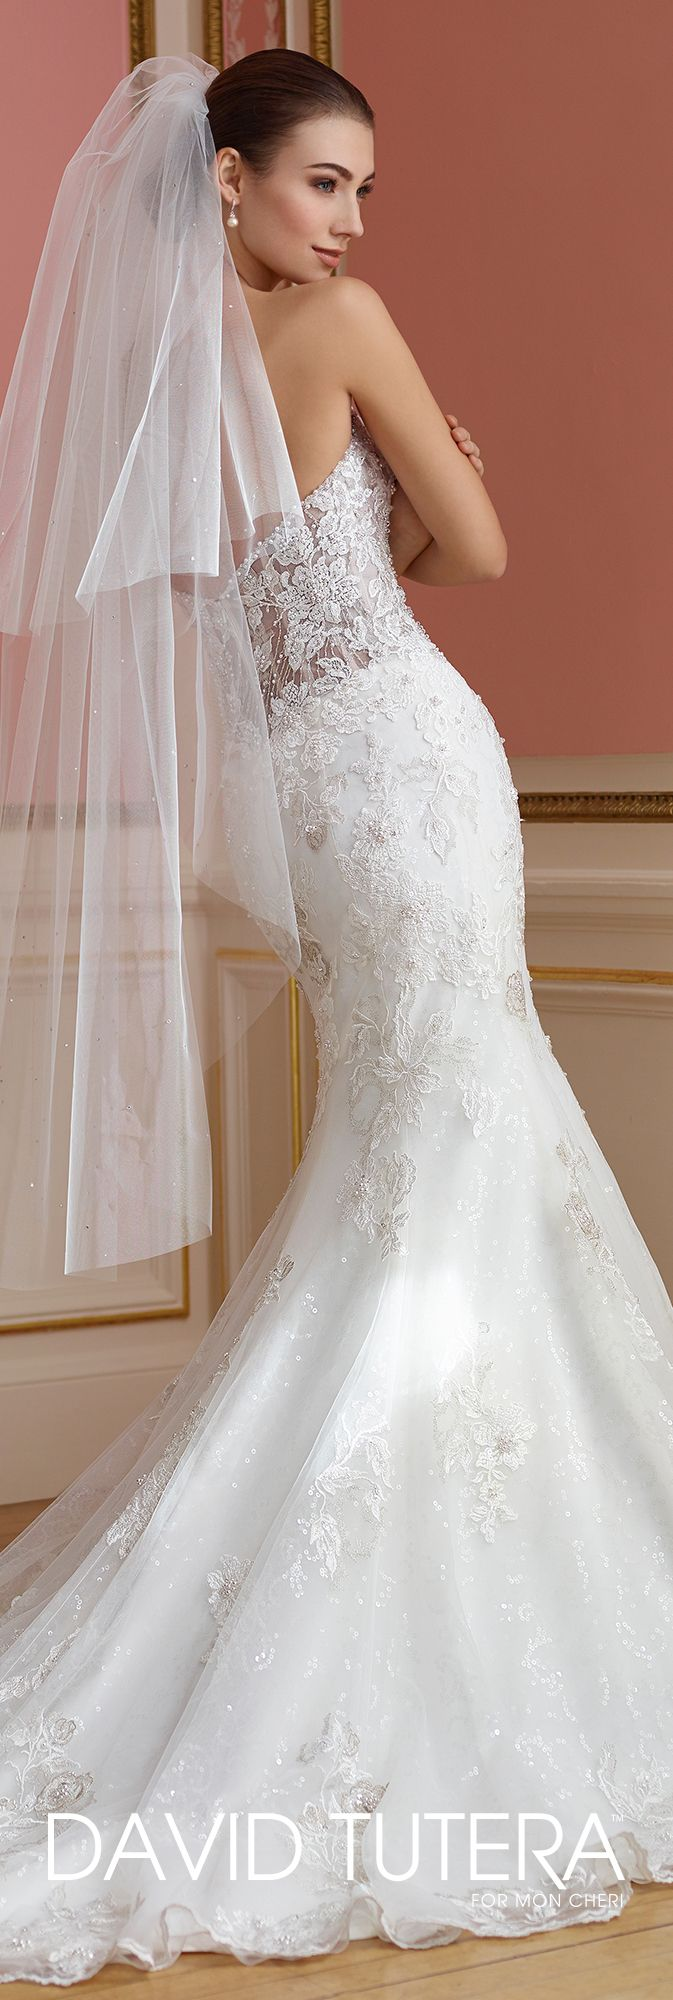 725 best david tutera for mon cheri images on pinterest for David tutera beach wedding dresses